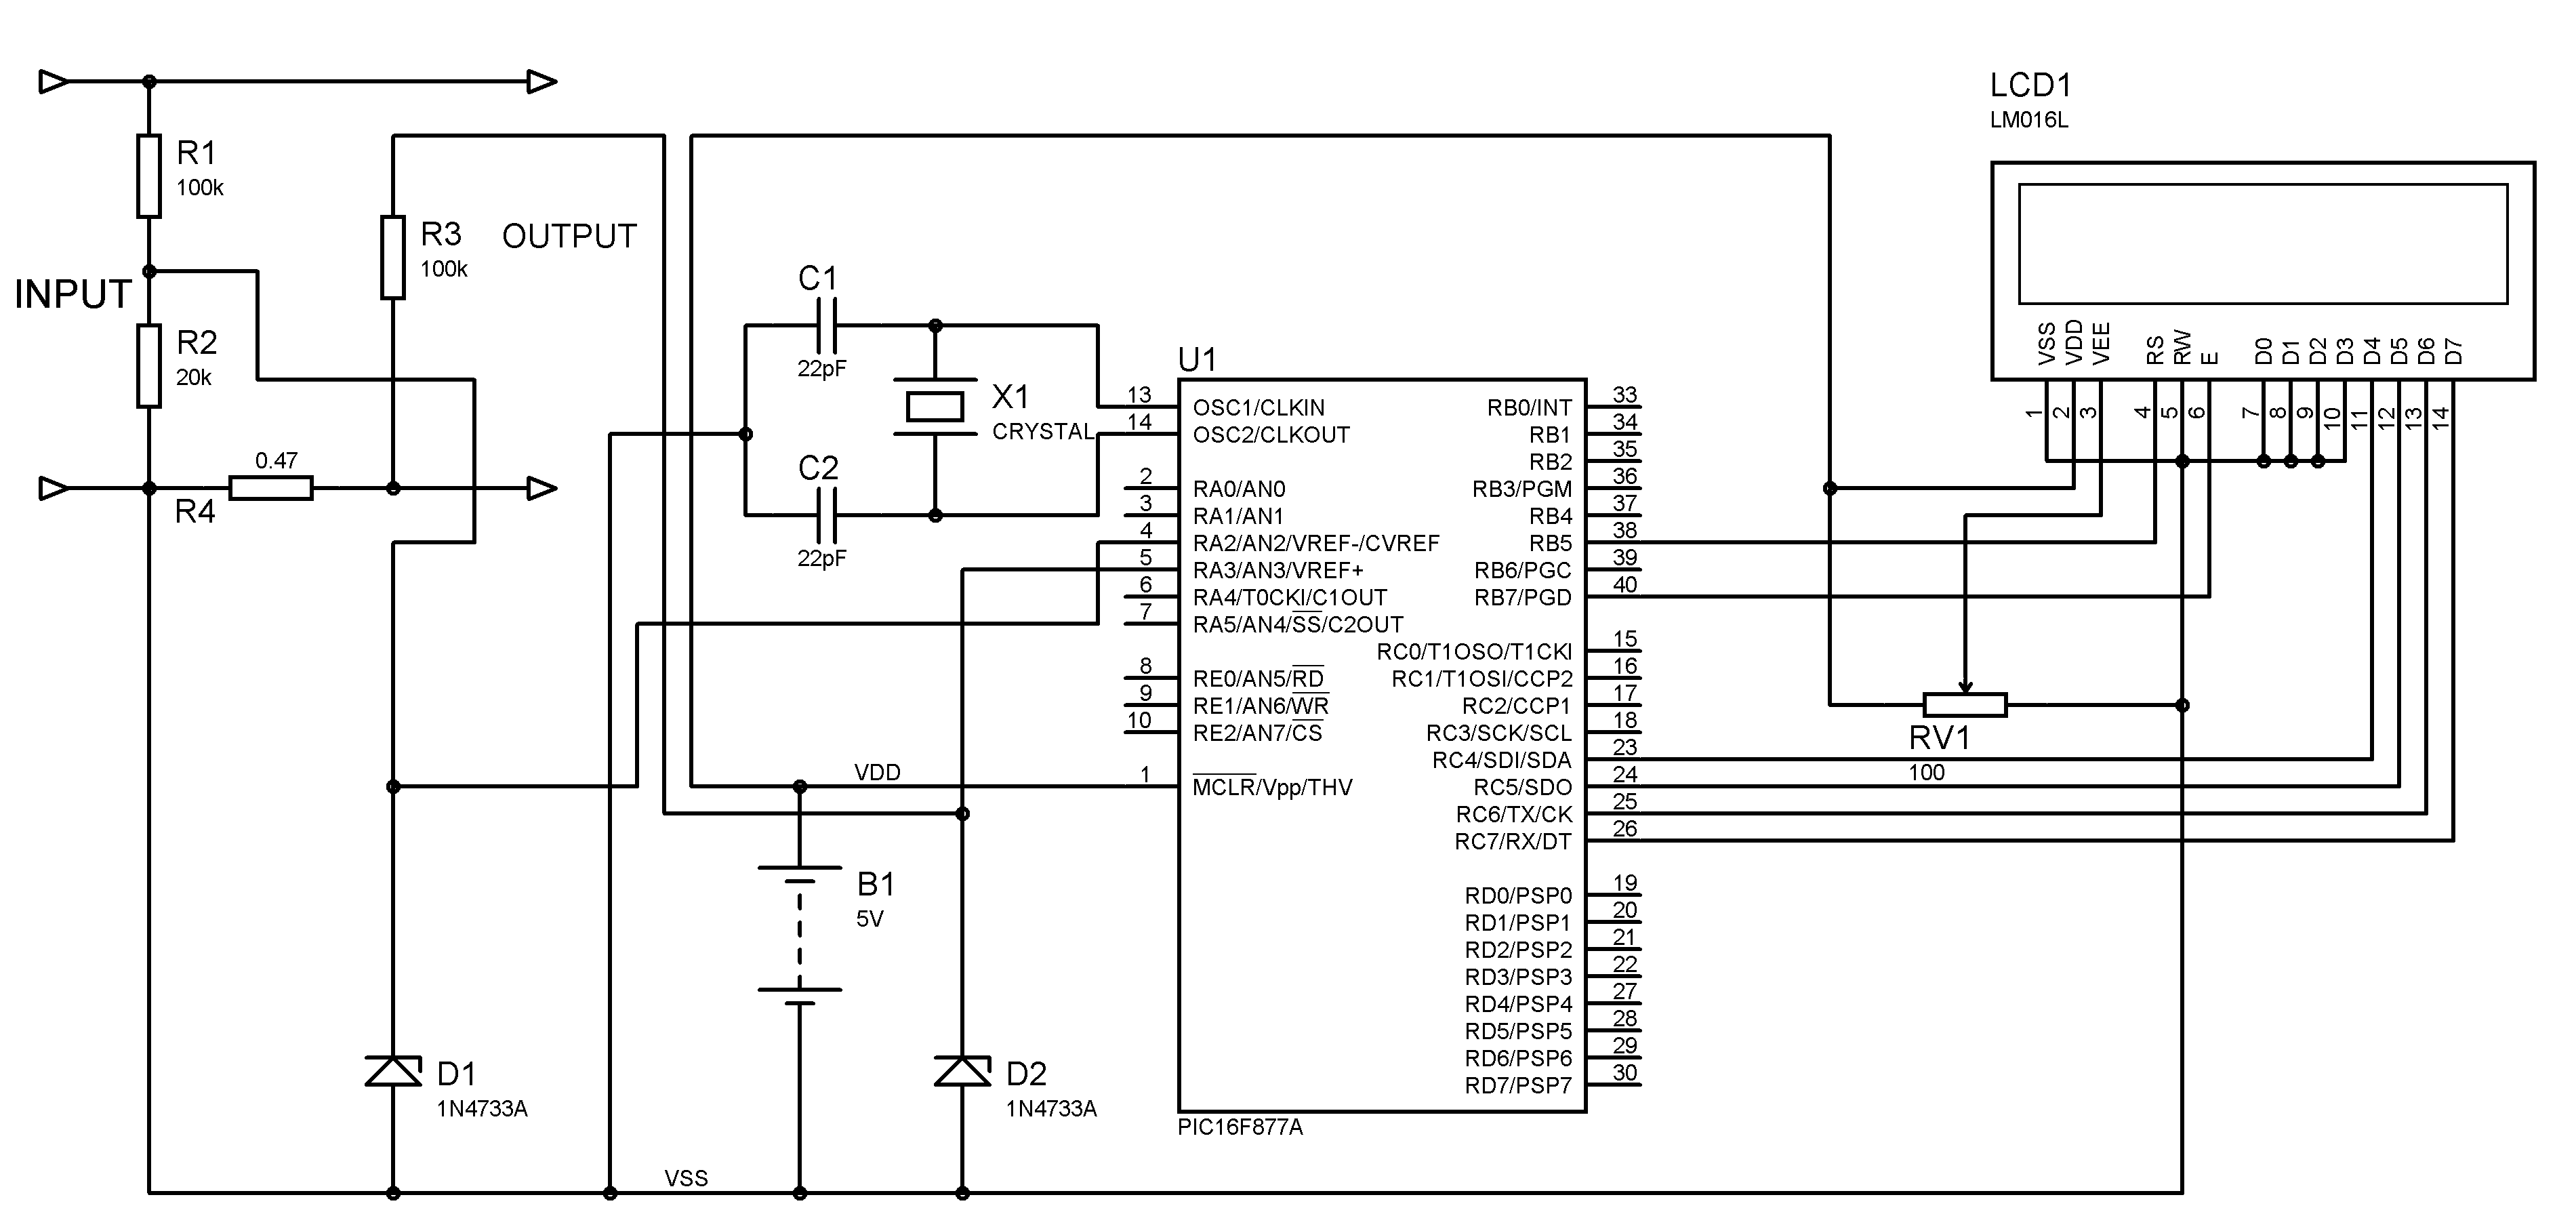 Voltmeterpicg circuit diagram ccuart